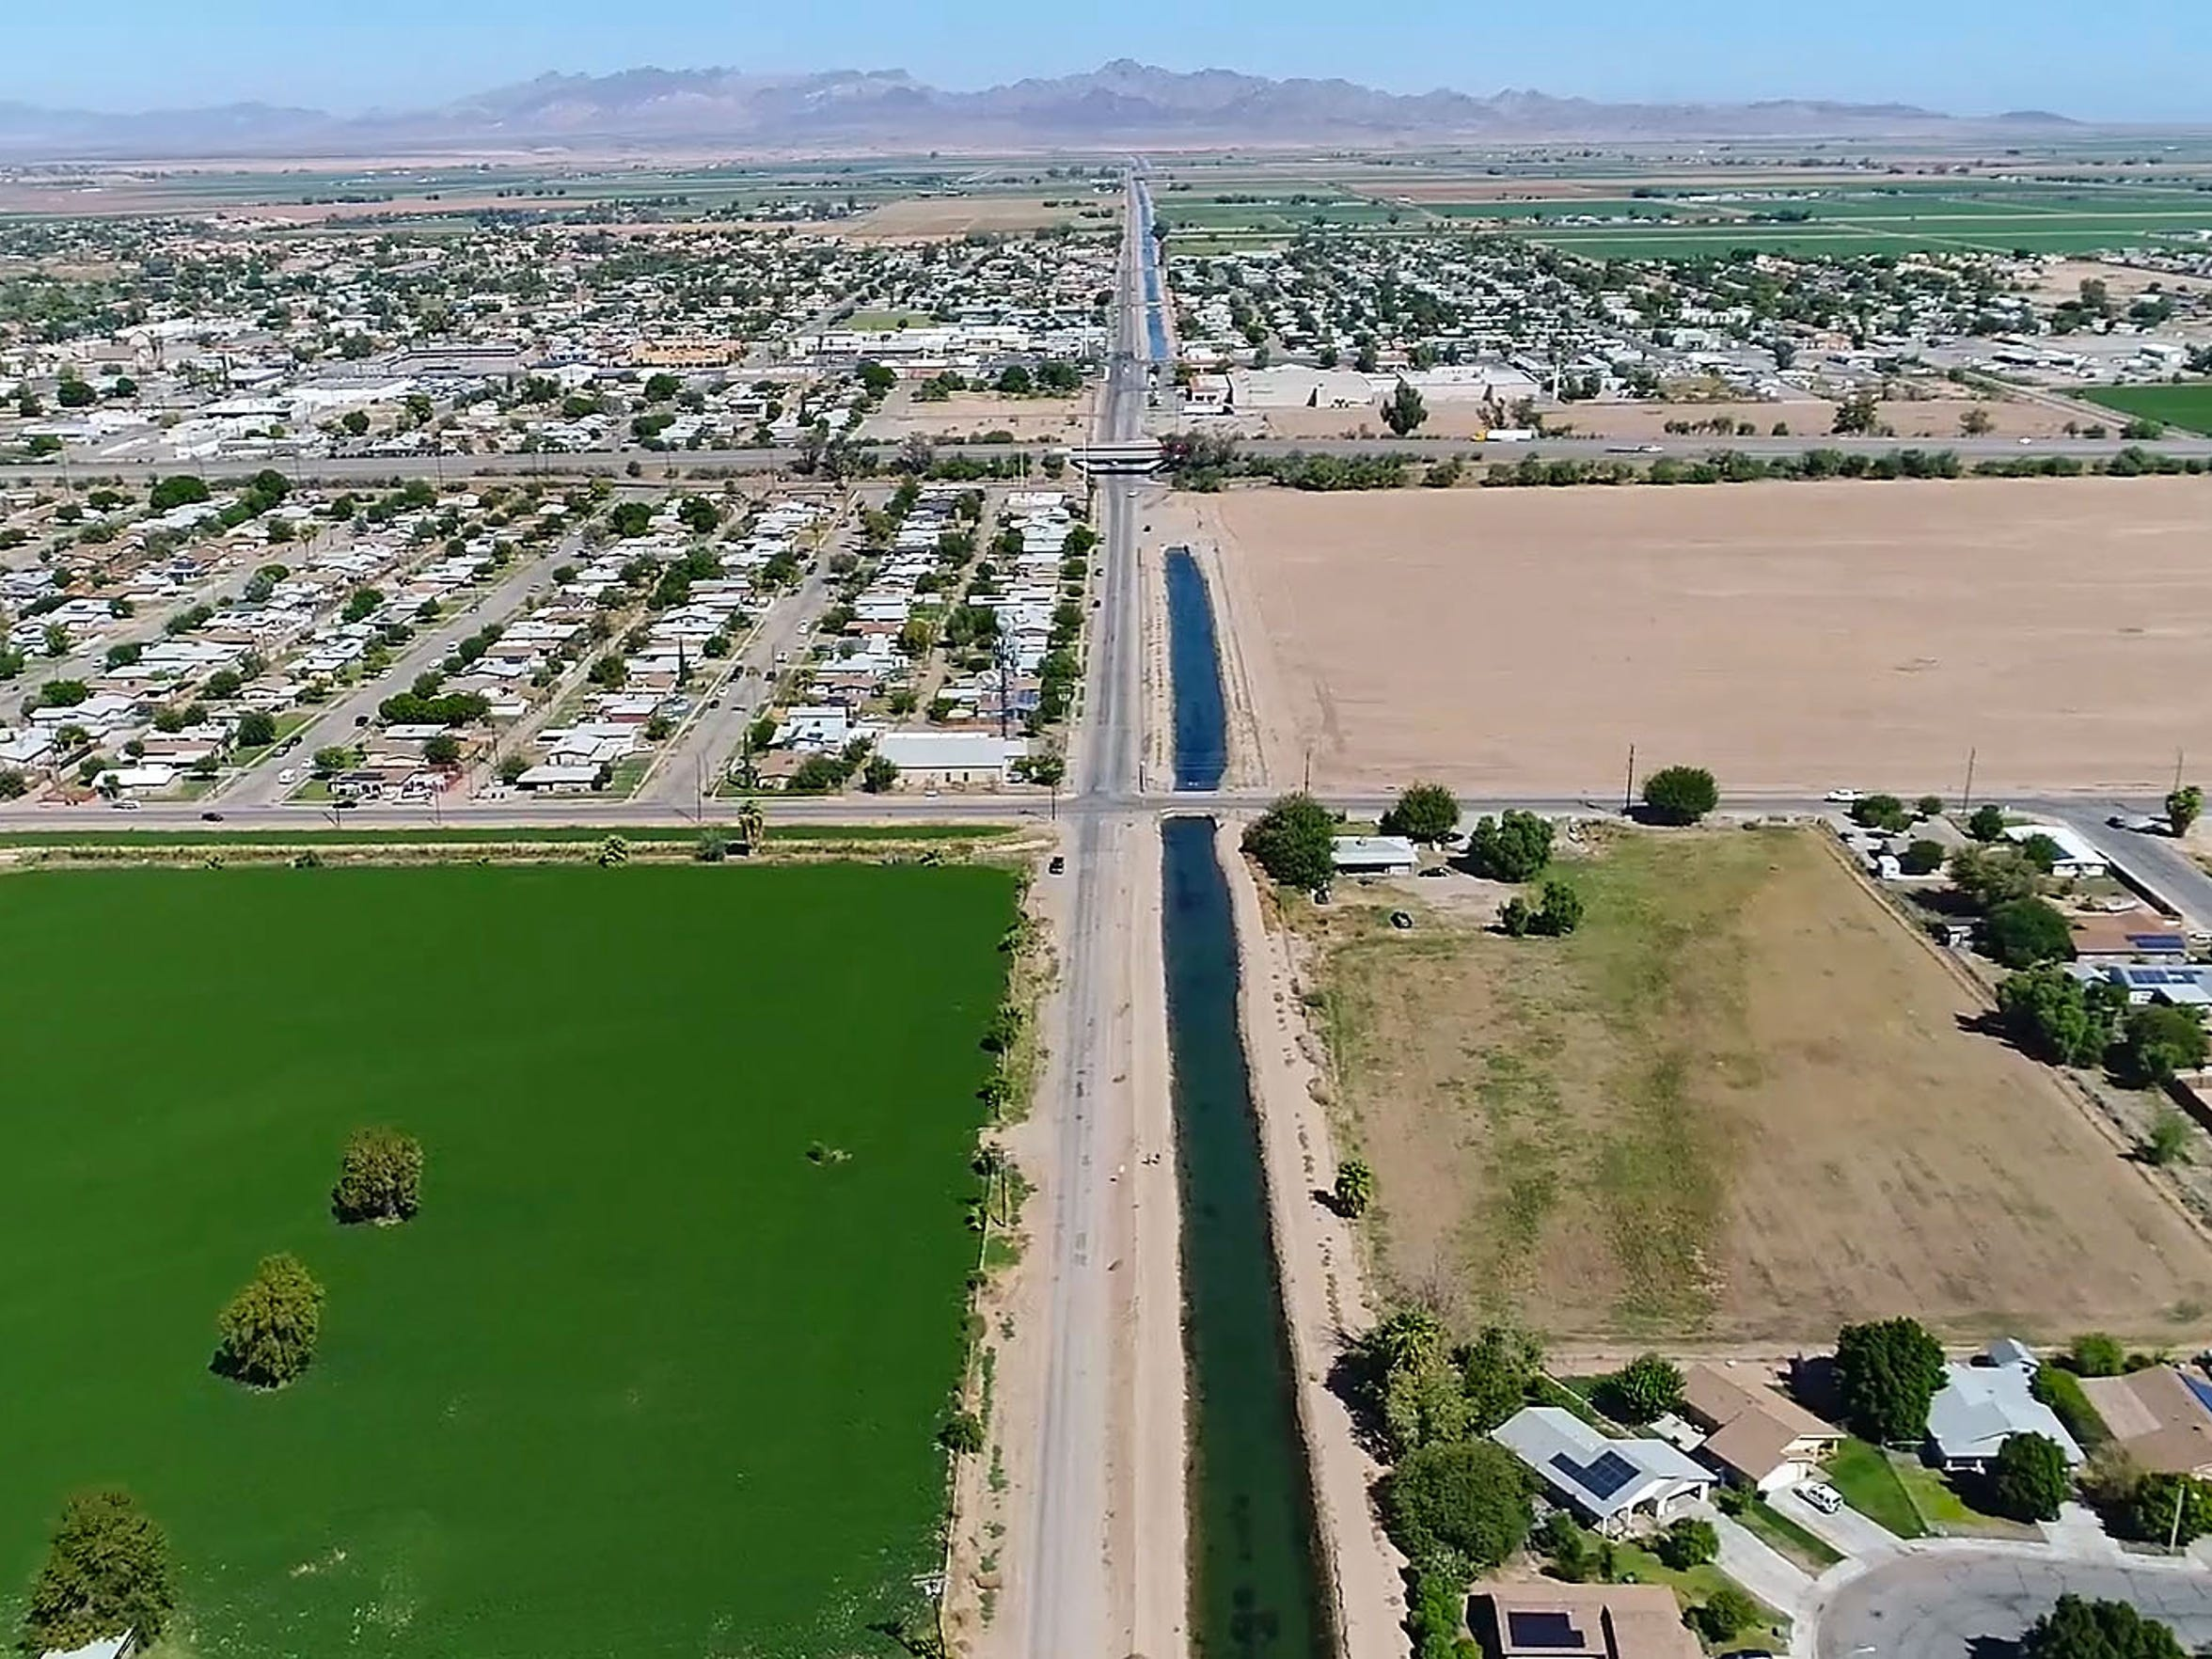 Farmland surrounds the city of Blythe near the California-Arizona border. For a moment, Blythe was the buzz of the weed business. Land is cheap and the city is equidistant from Los Angeles, Las Vegas and Phoenix.